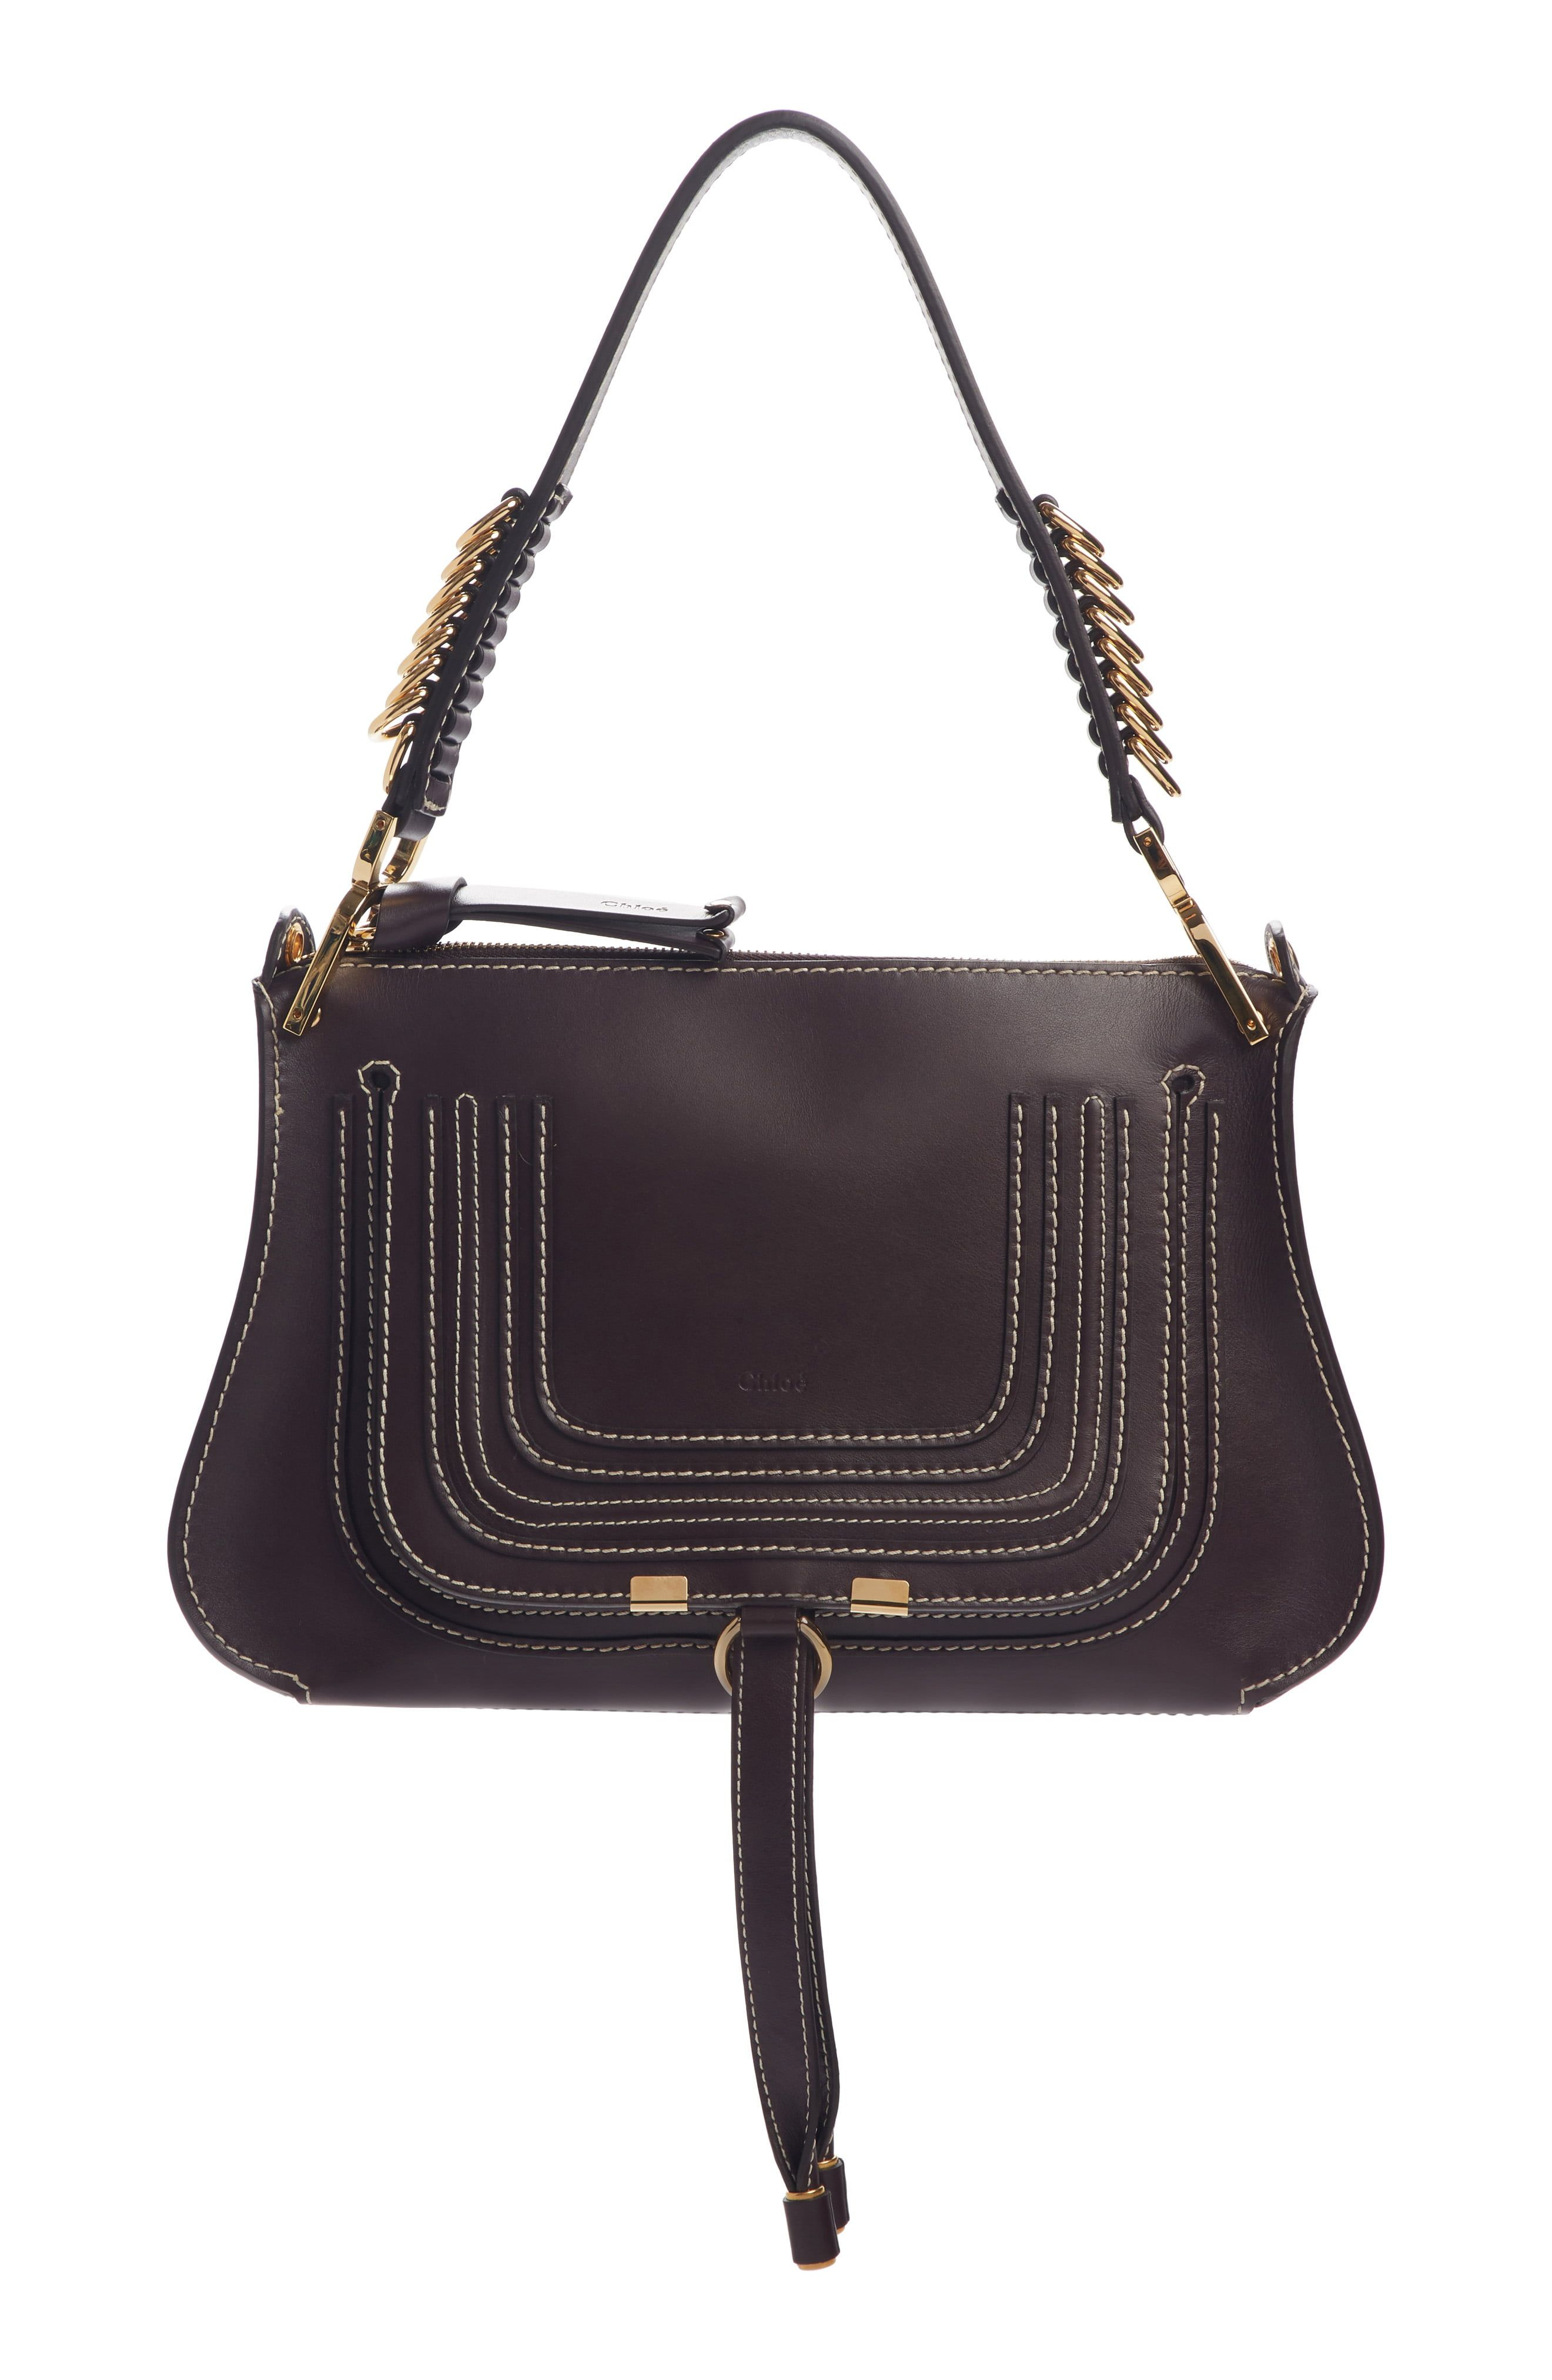 38bf0c9a Chloé Marcie Leather Top Handle Bag in 2019 | Products | Bags ...